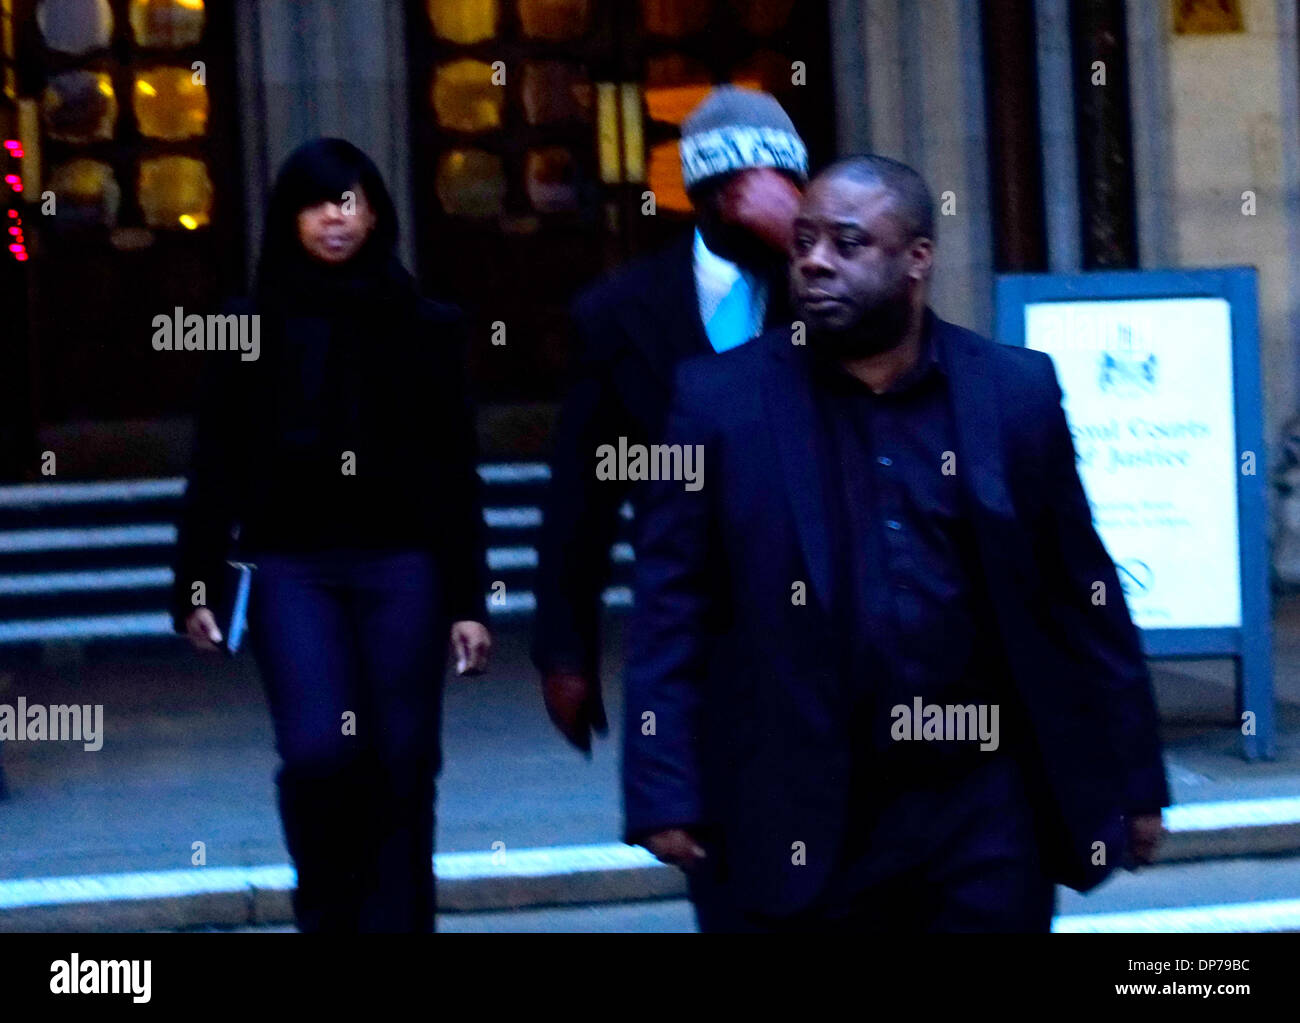 London, UK. 8th January 2014. Ray Lewis outside court after Mark Duggan inquest Credit:  Rachel Megawhat/Alamy Live News - Stock Image